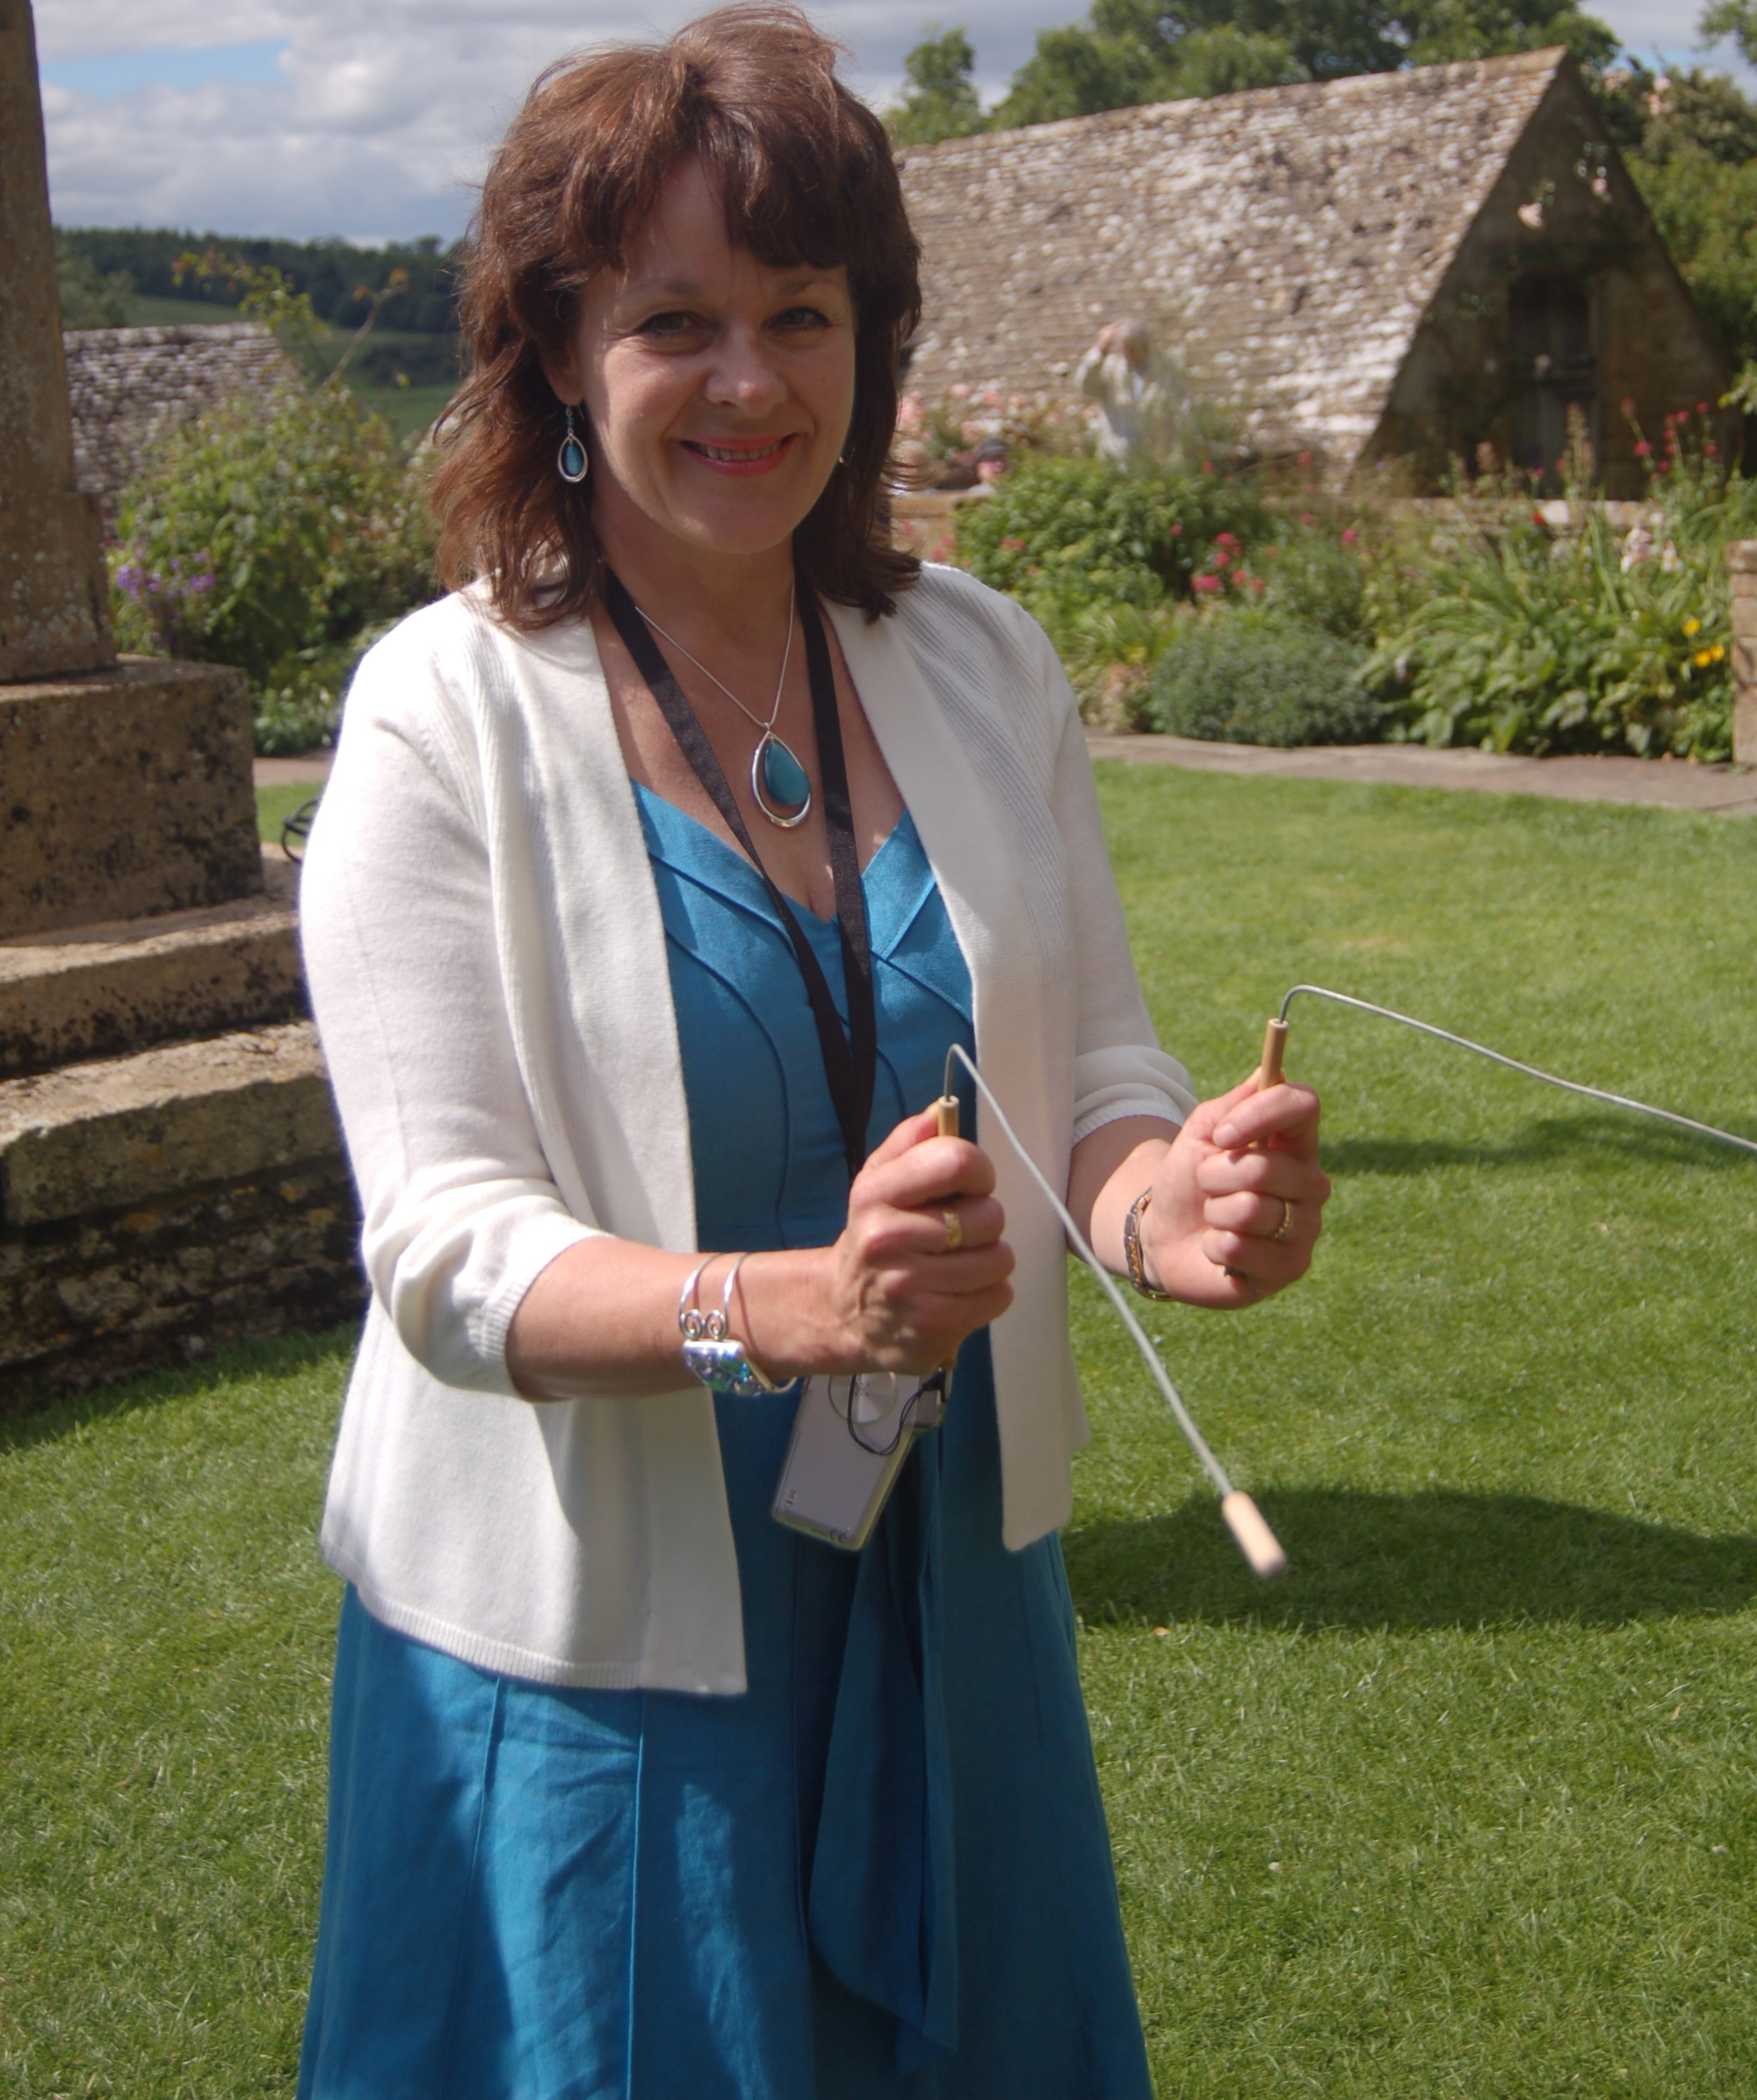 Have you tried dowsing?